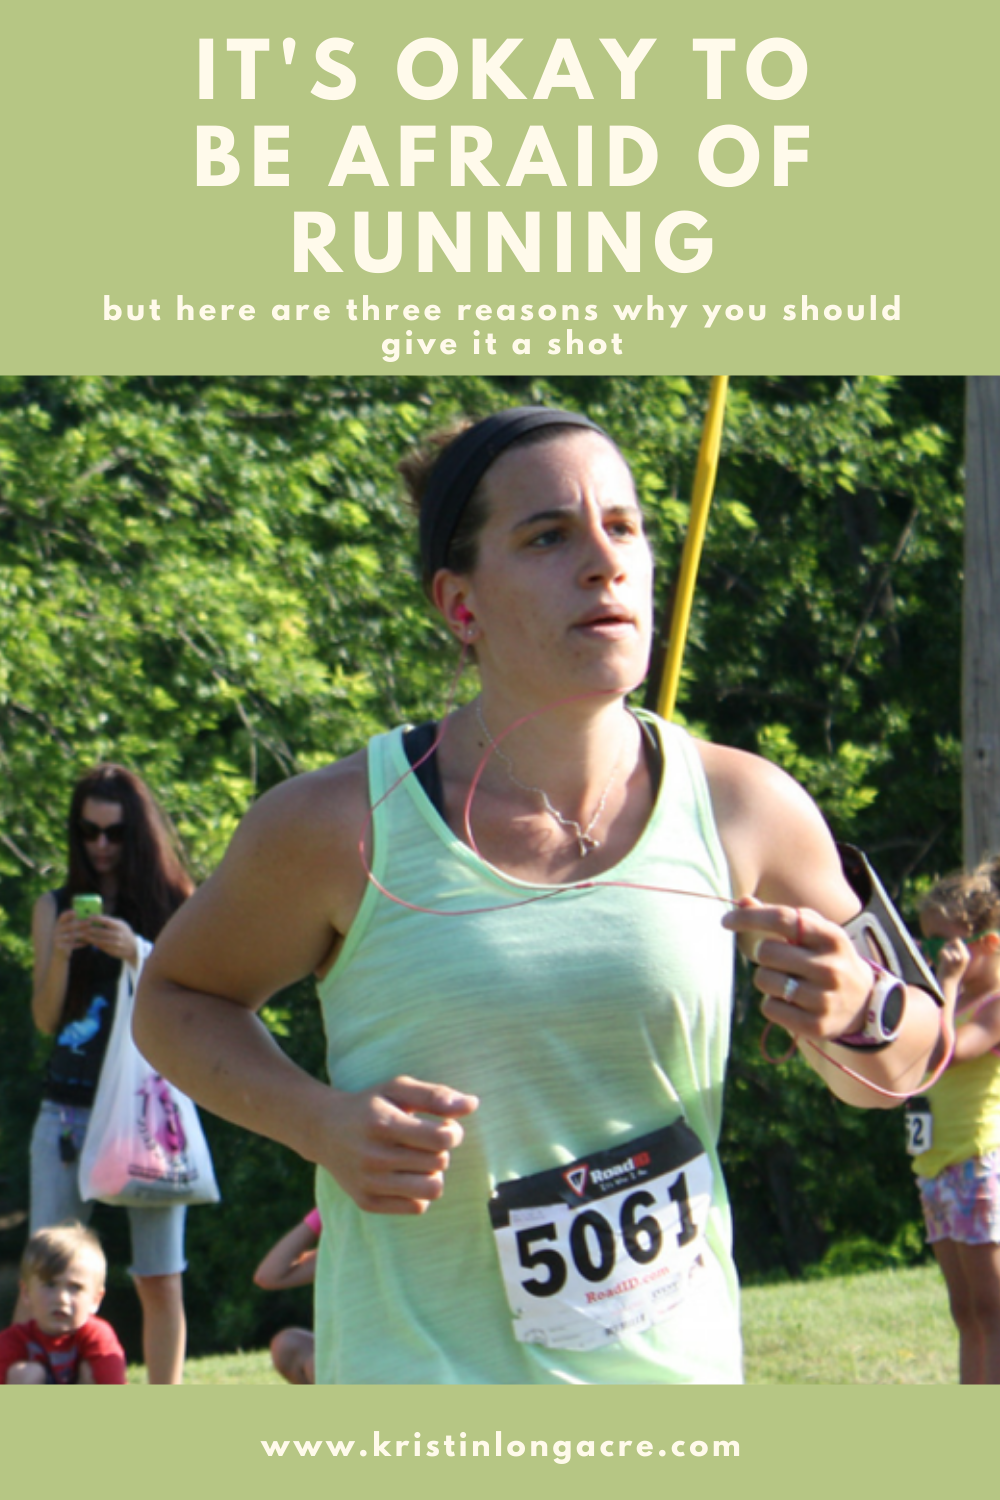 It's Okay to be afraid of running